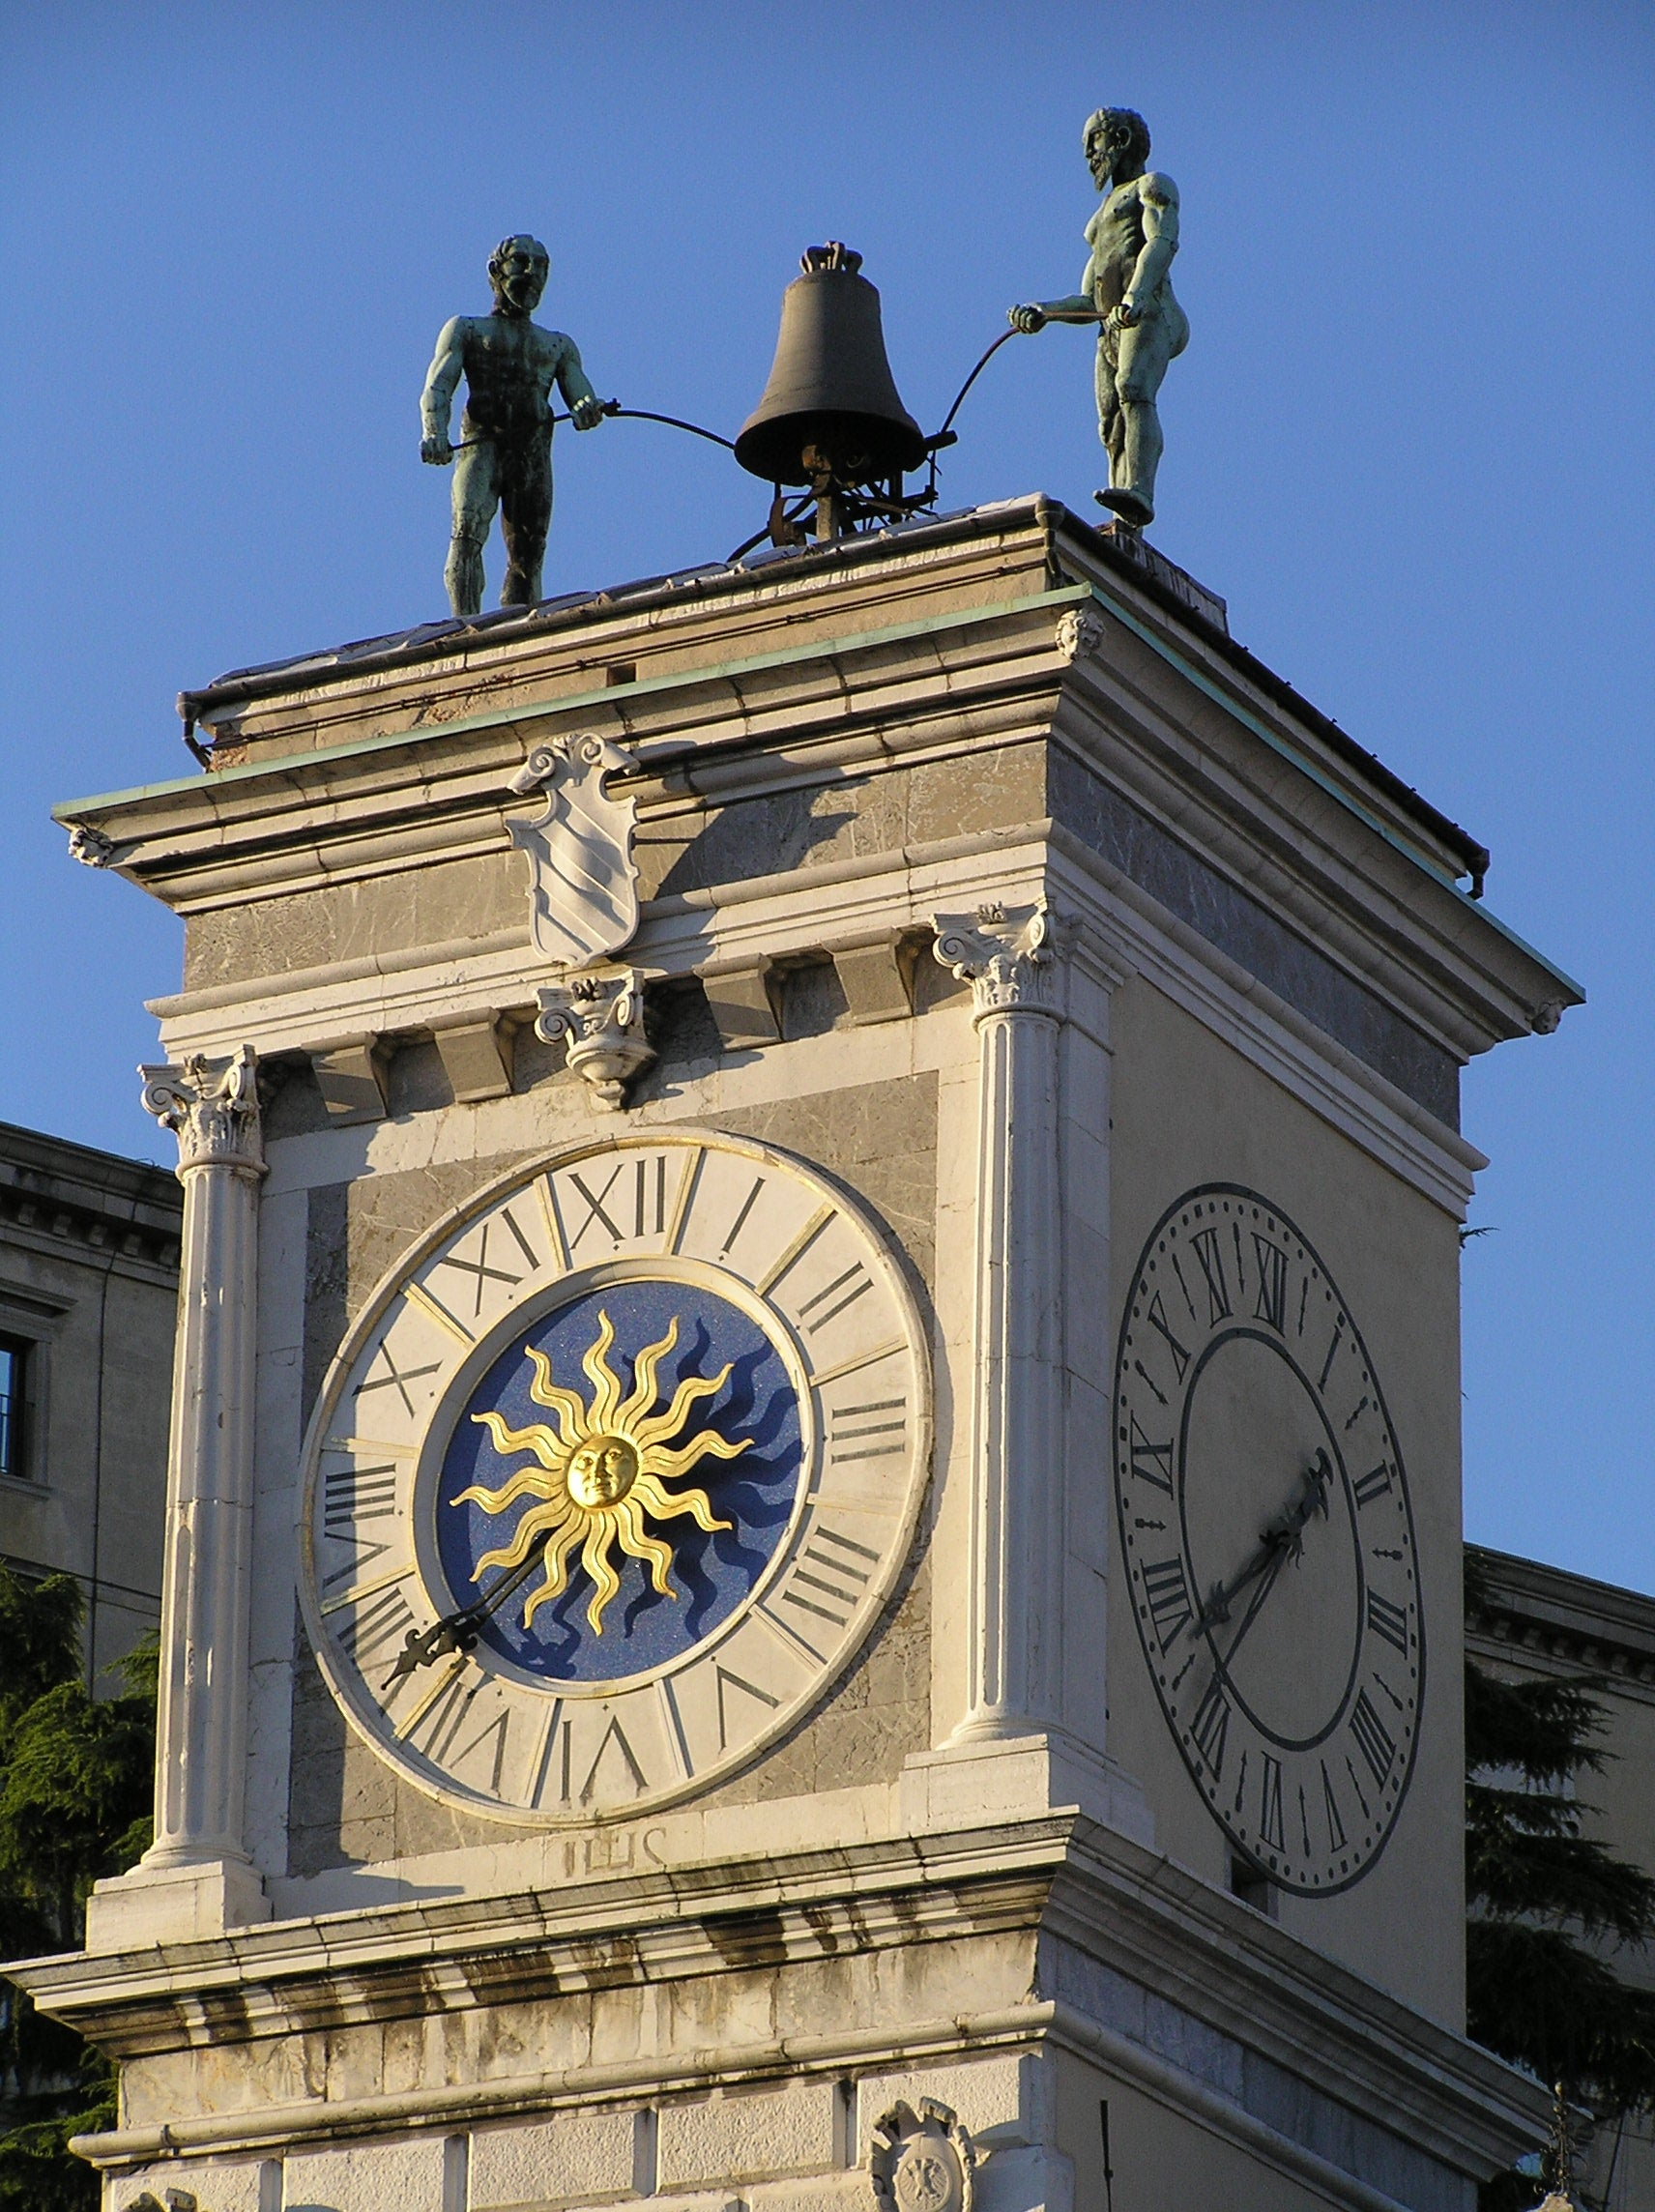 The Two Moors of the Clock Tower